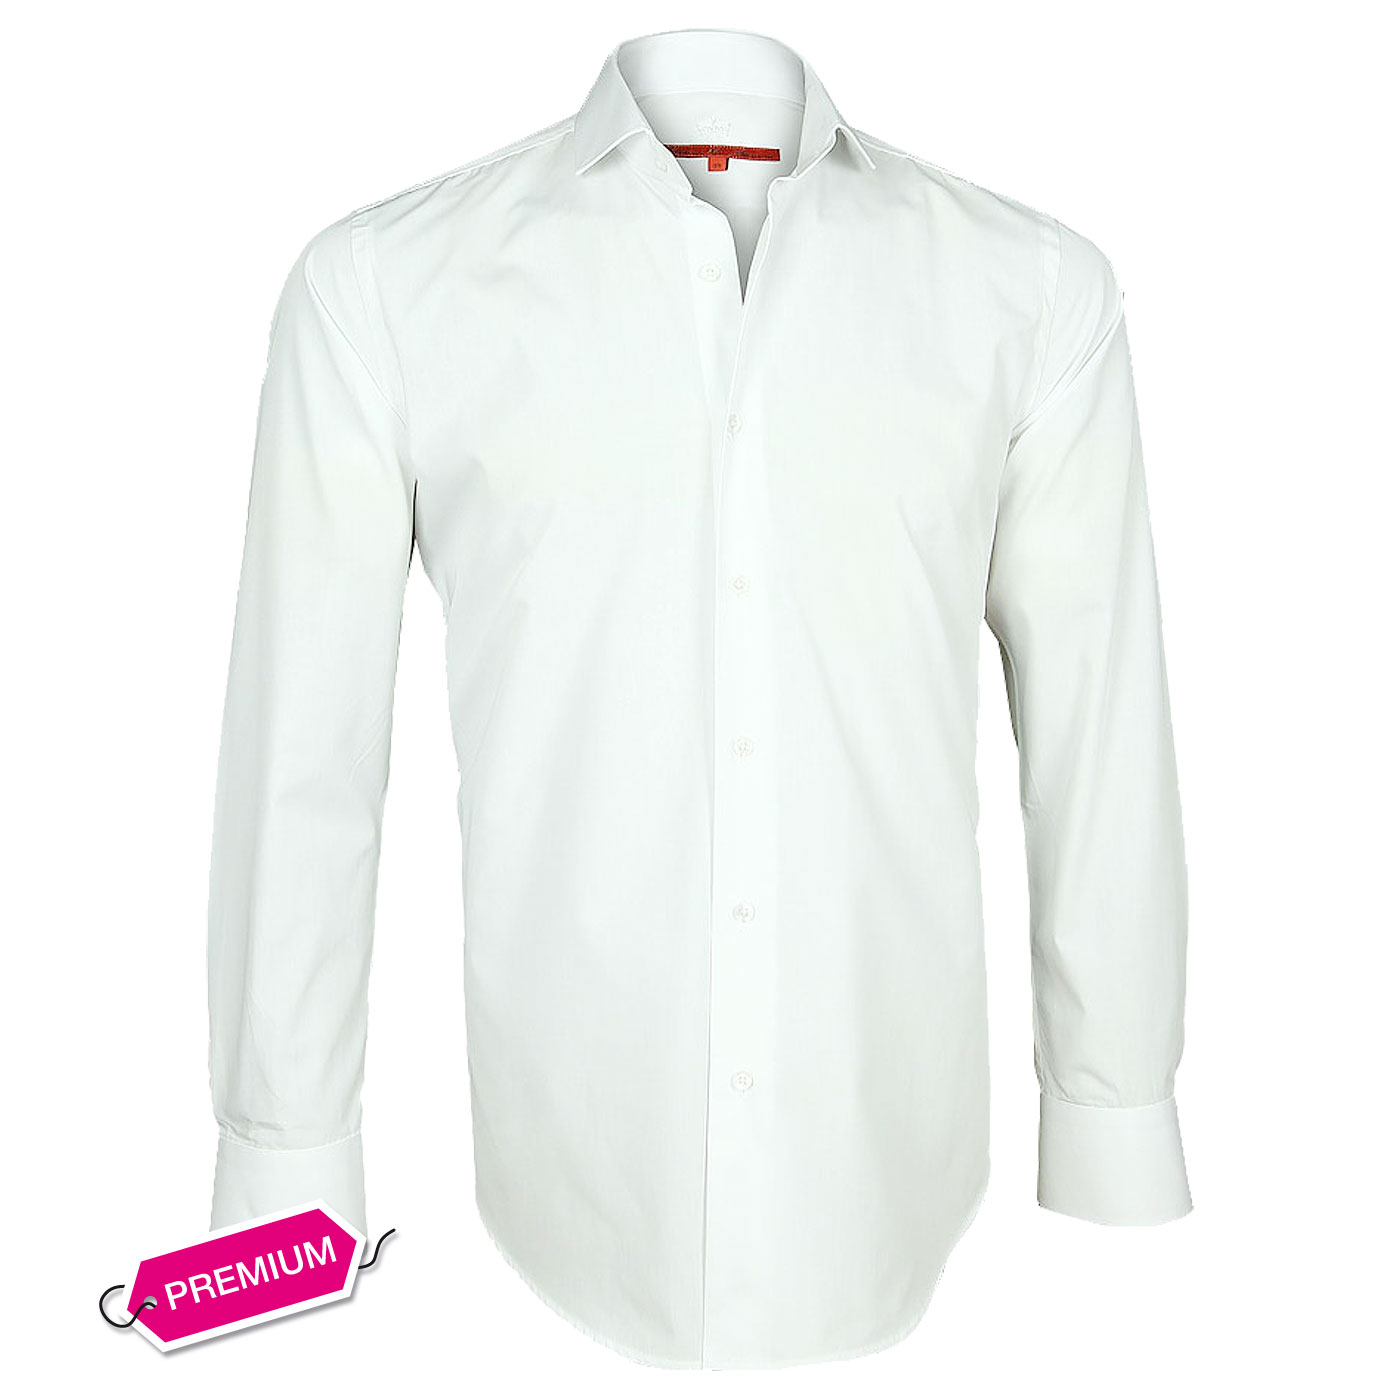 White Shirt Regular or slim cut 800 Models Delivered in 48H